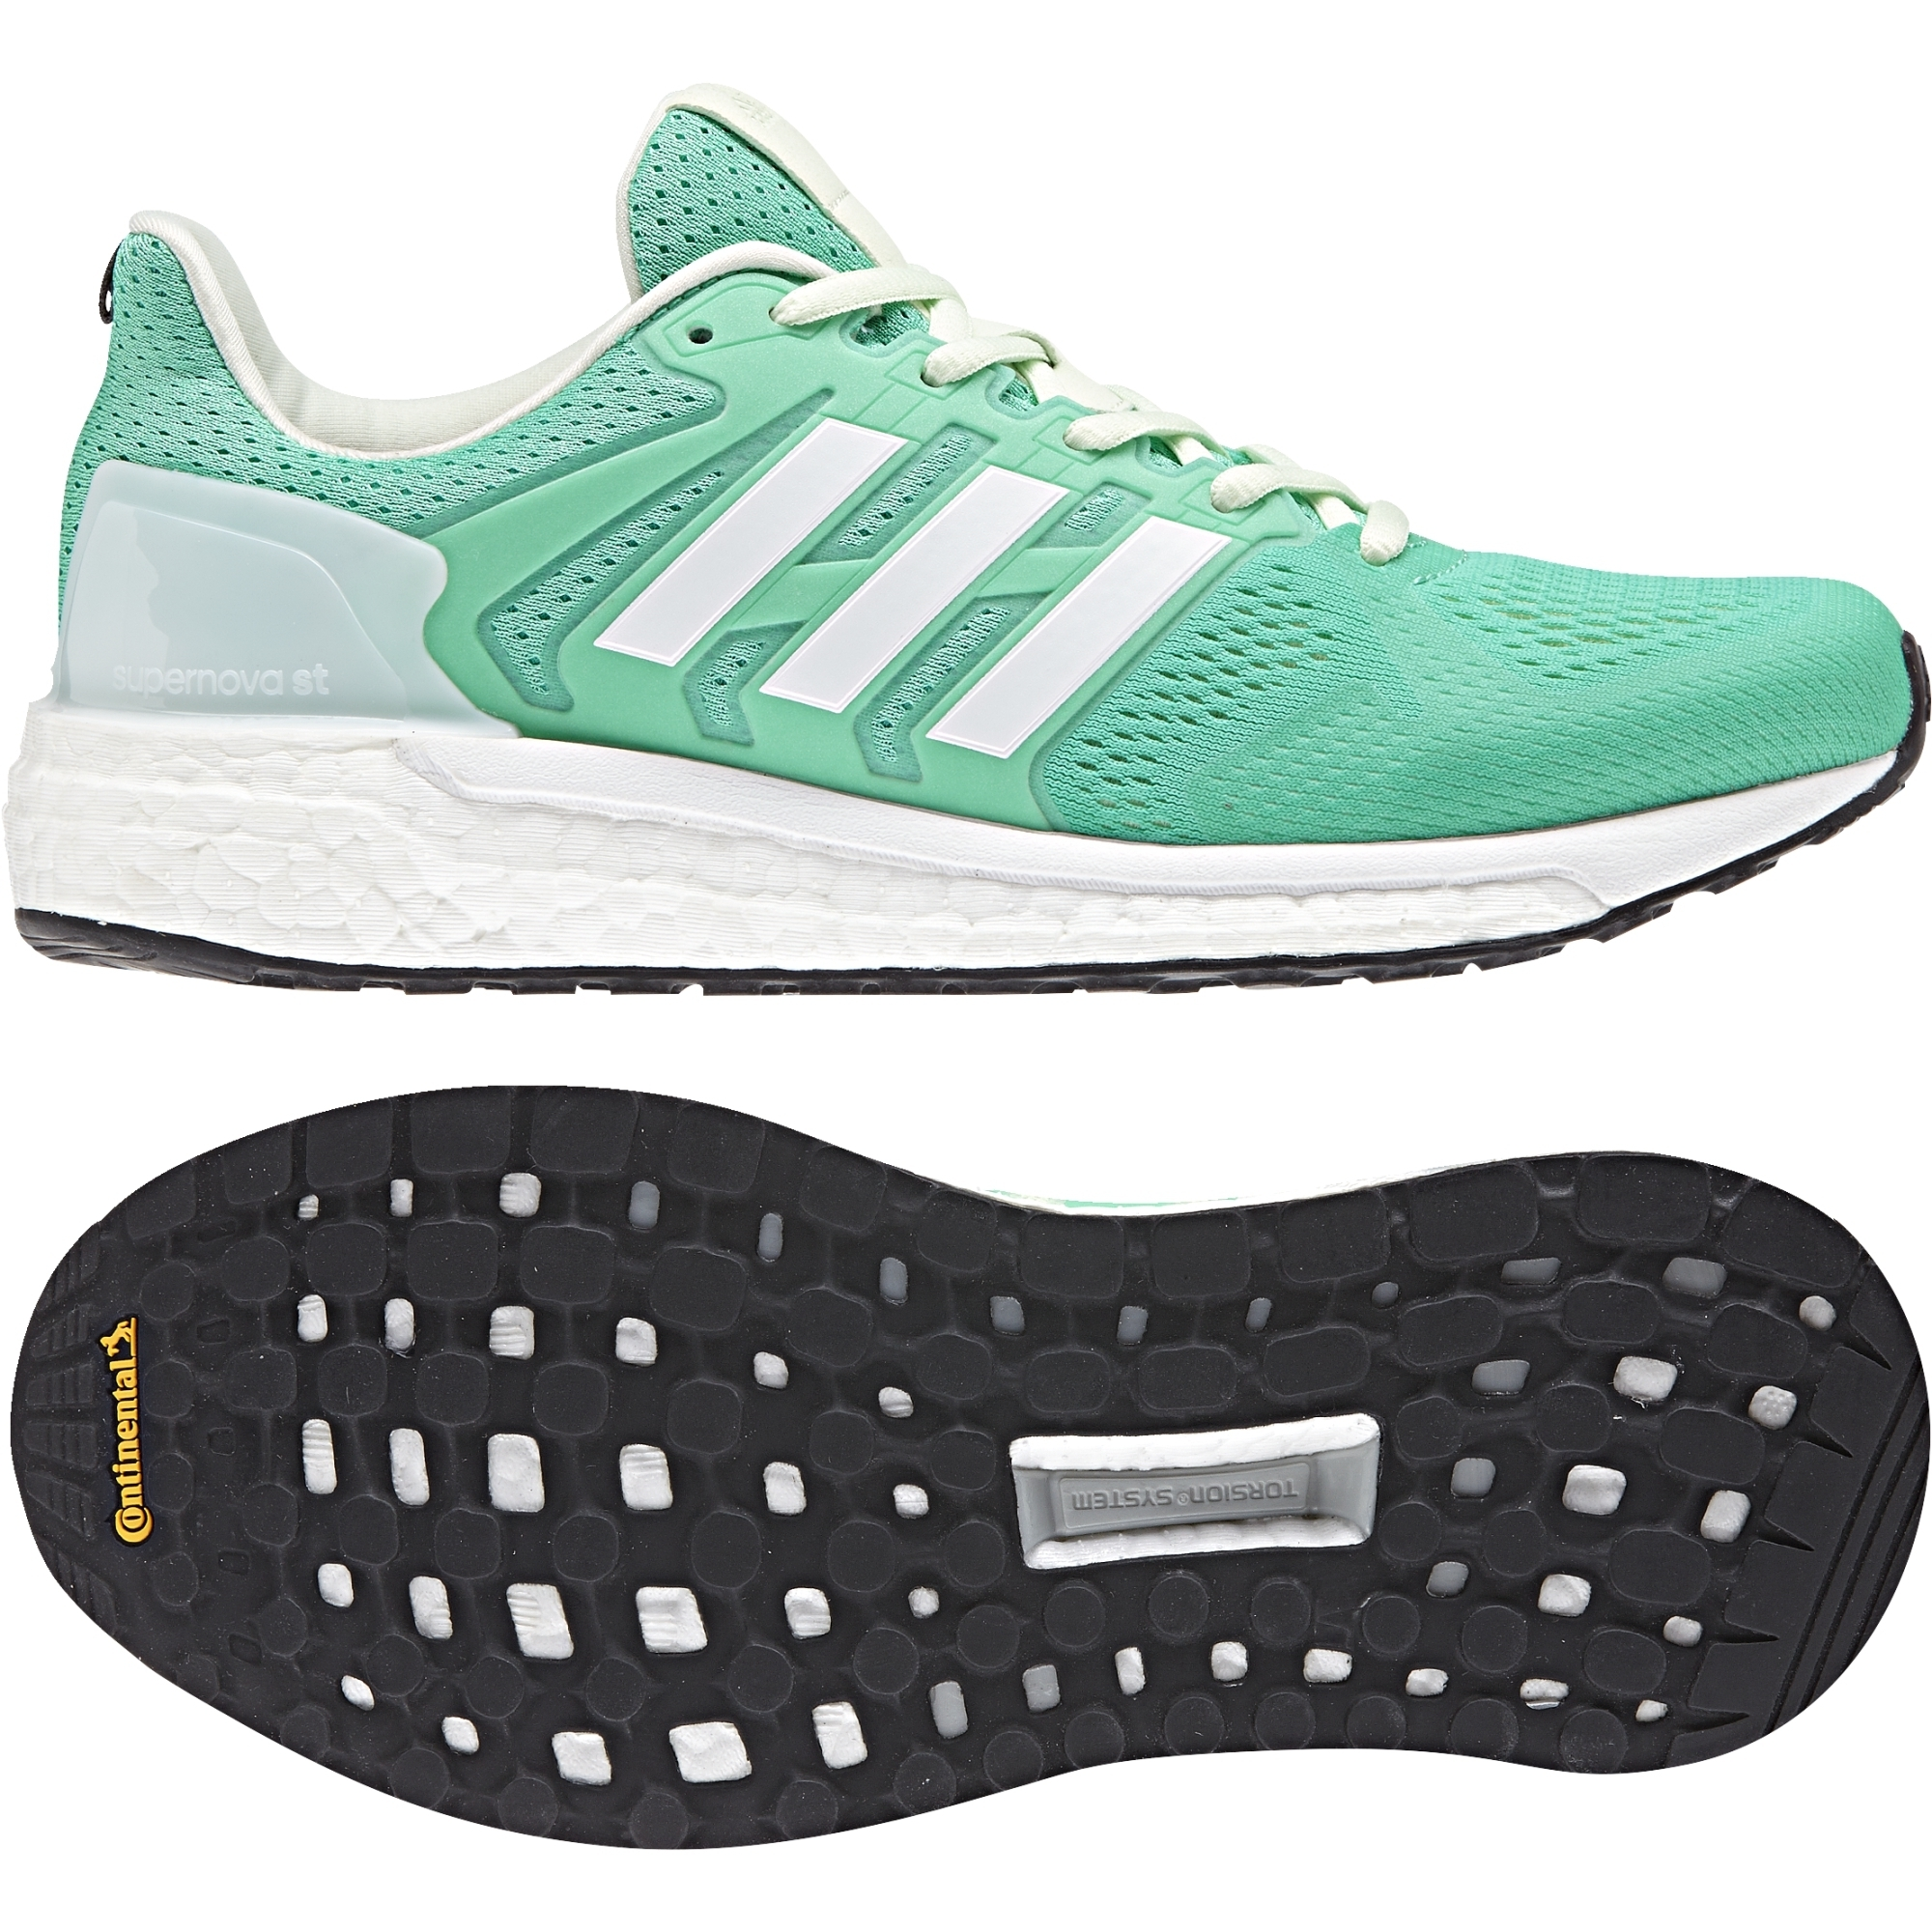 new images of new arrivals official images Chaussures femme adidas Supernova ST